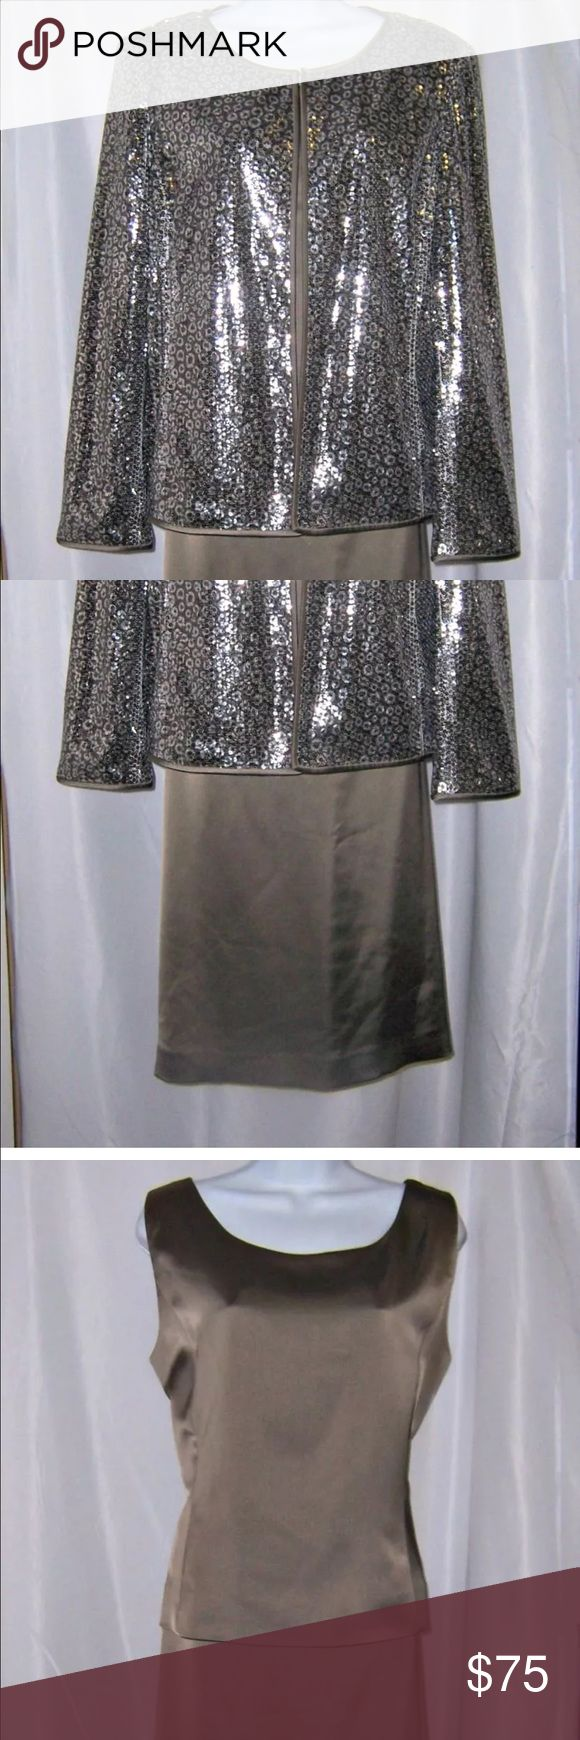 Three piece evening/formal skirt suit set It's absolutely gorgeous! Pictures do not do it justice. The skirt and top are a beautiful shade of taupe and the jacket is sequins. Kasper Dresses Midi